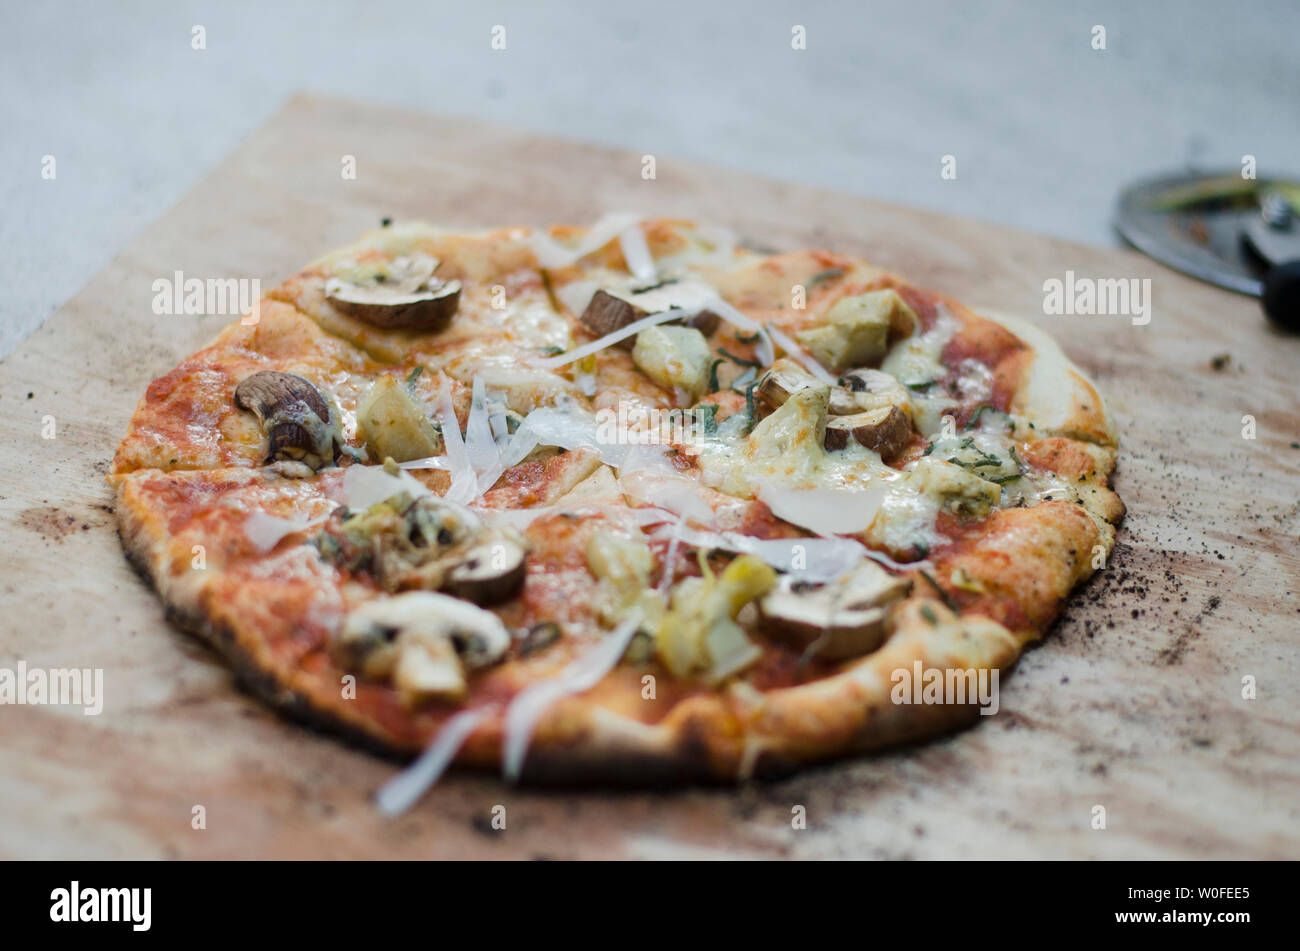 Rustic Pizza On Wooden Slate - Stock Image